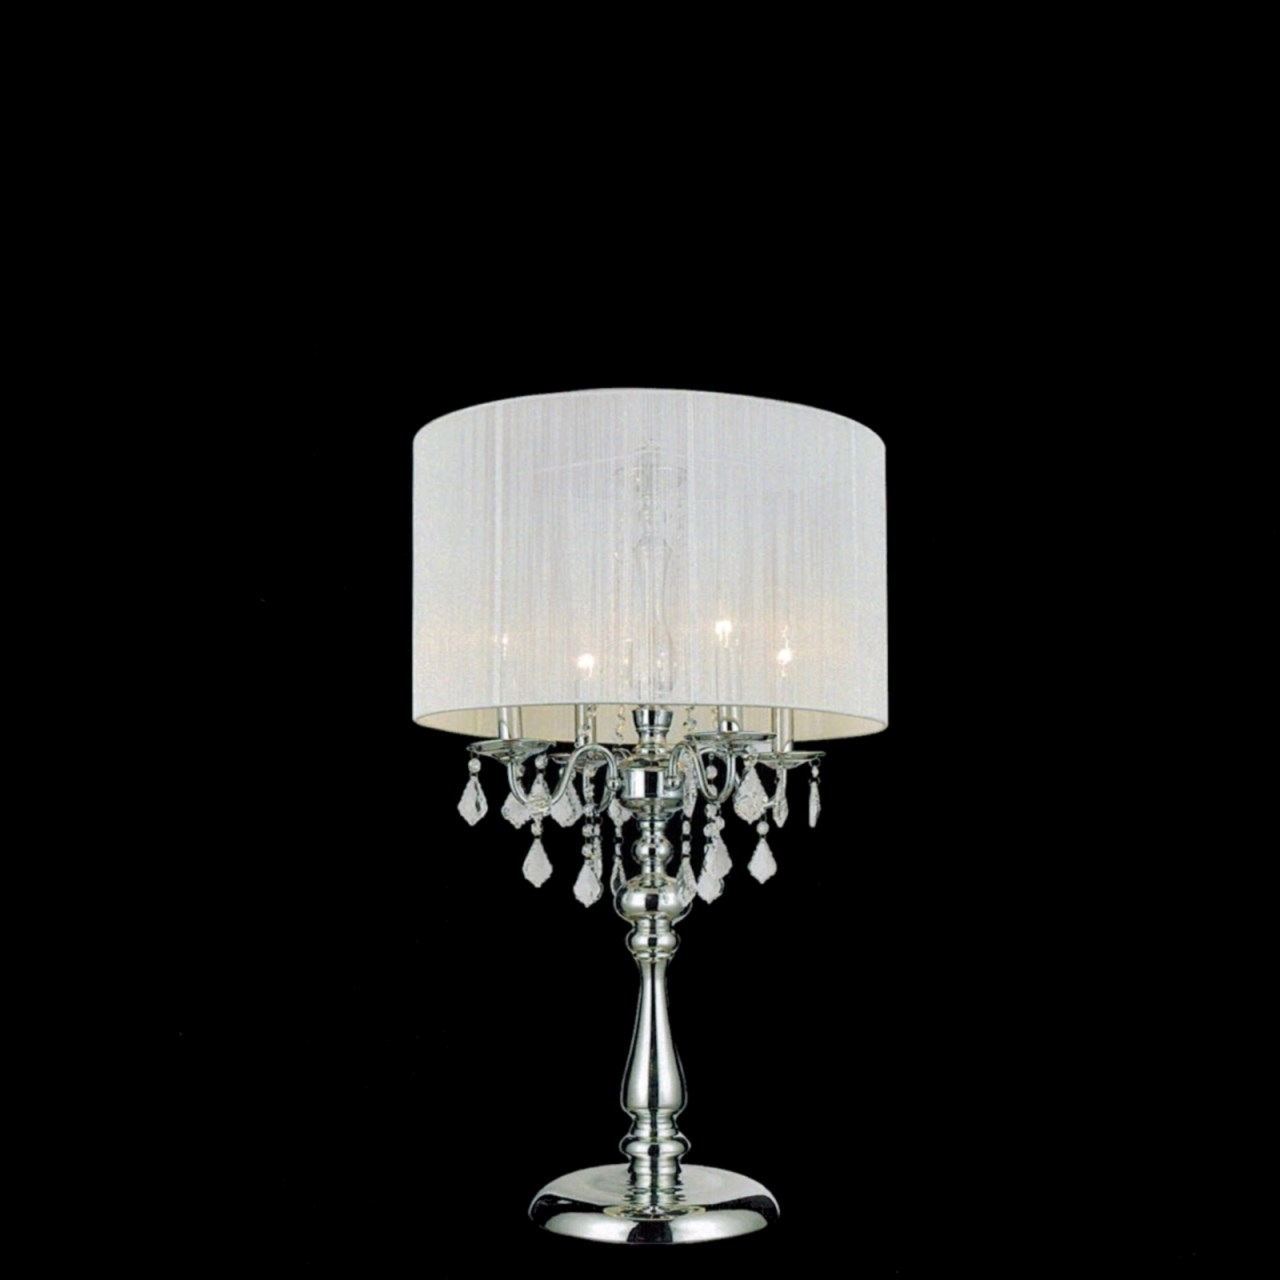 Chandelier Lampshades Inside Most Up To Date Chandelier Lamp Shades With Crystals : Furniture Decor Trend – Best (View 17 of 20)